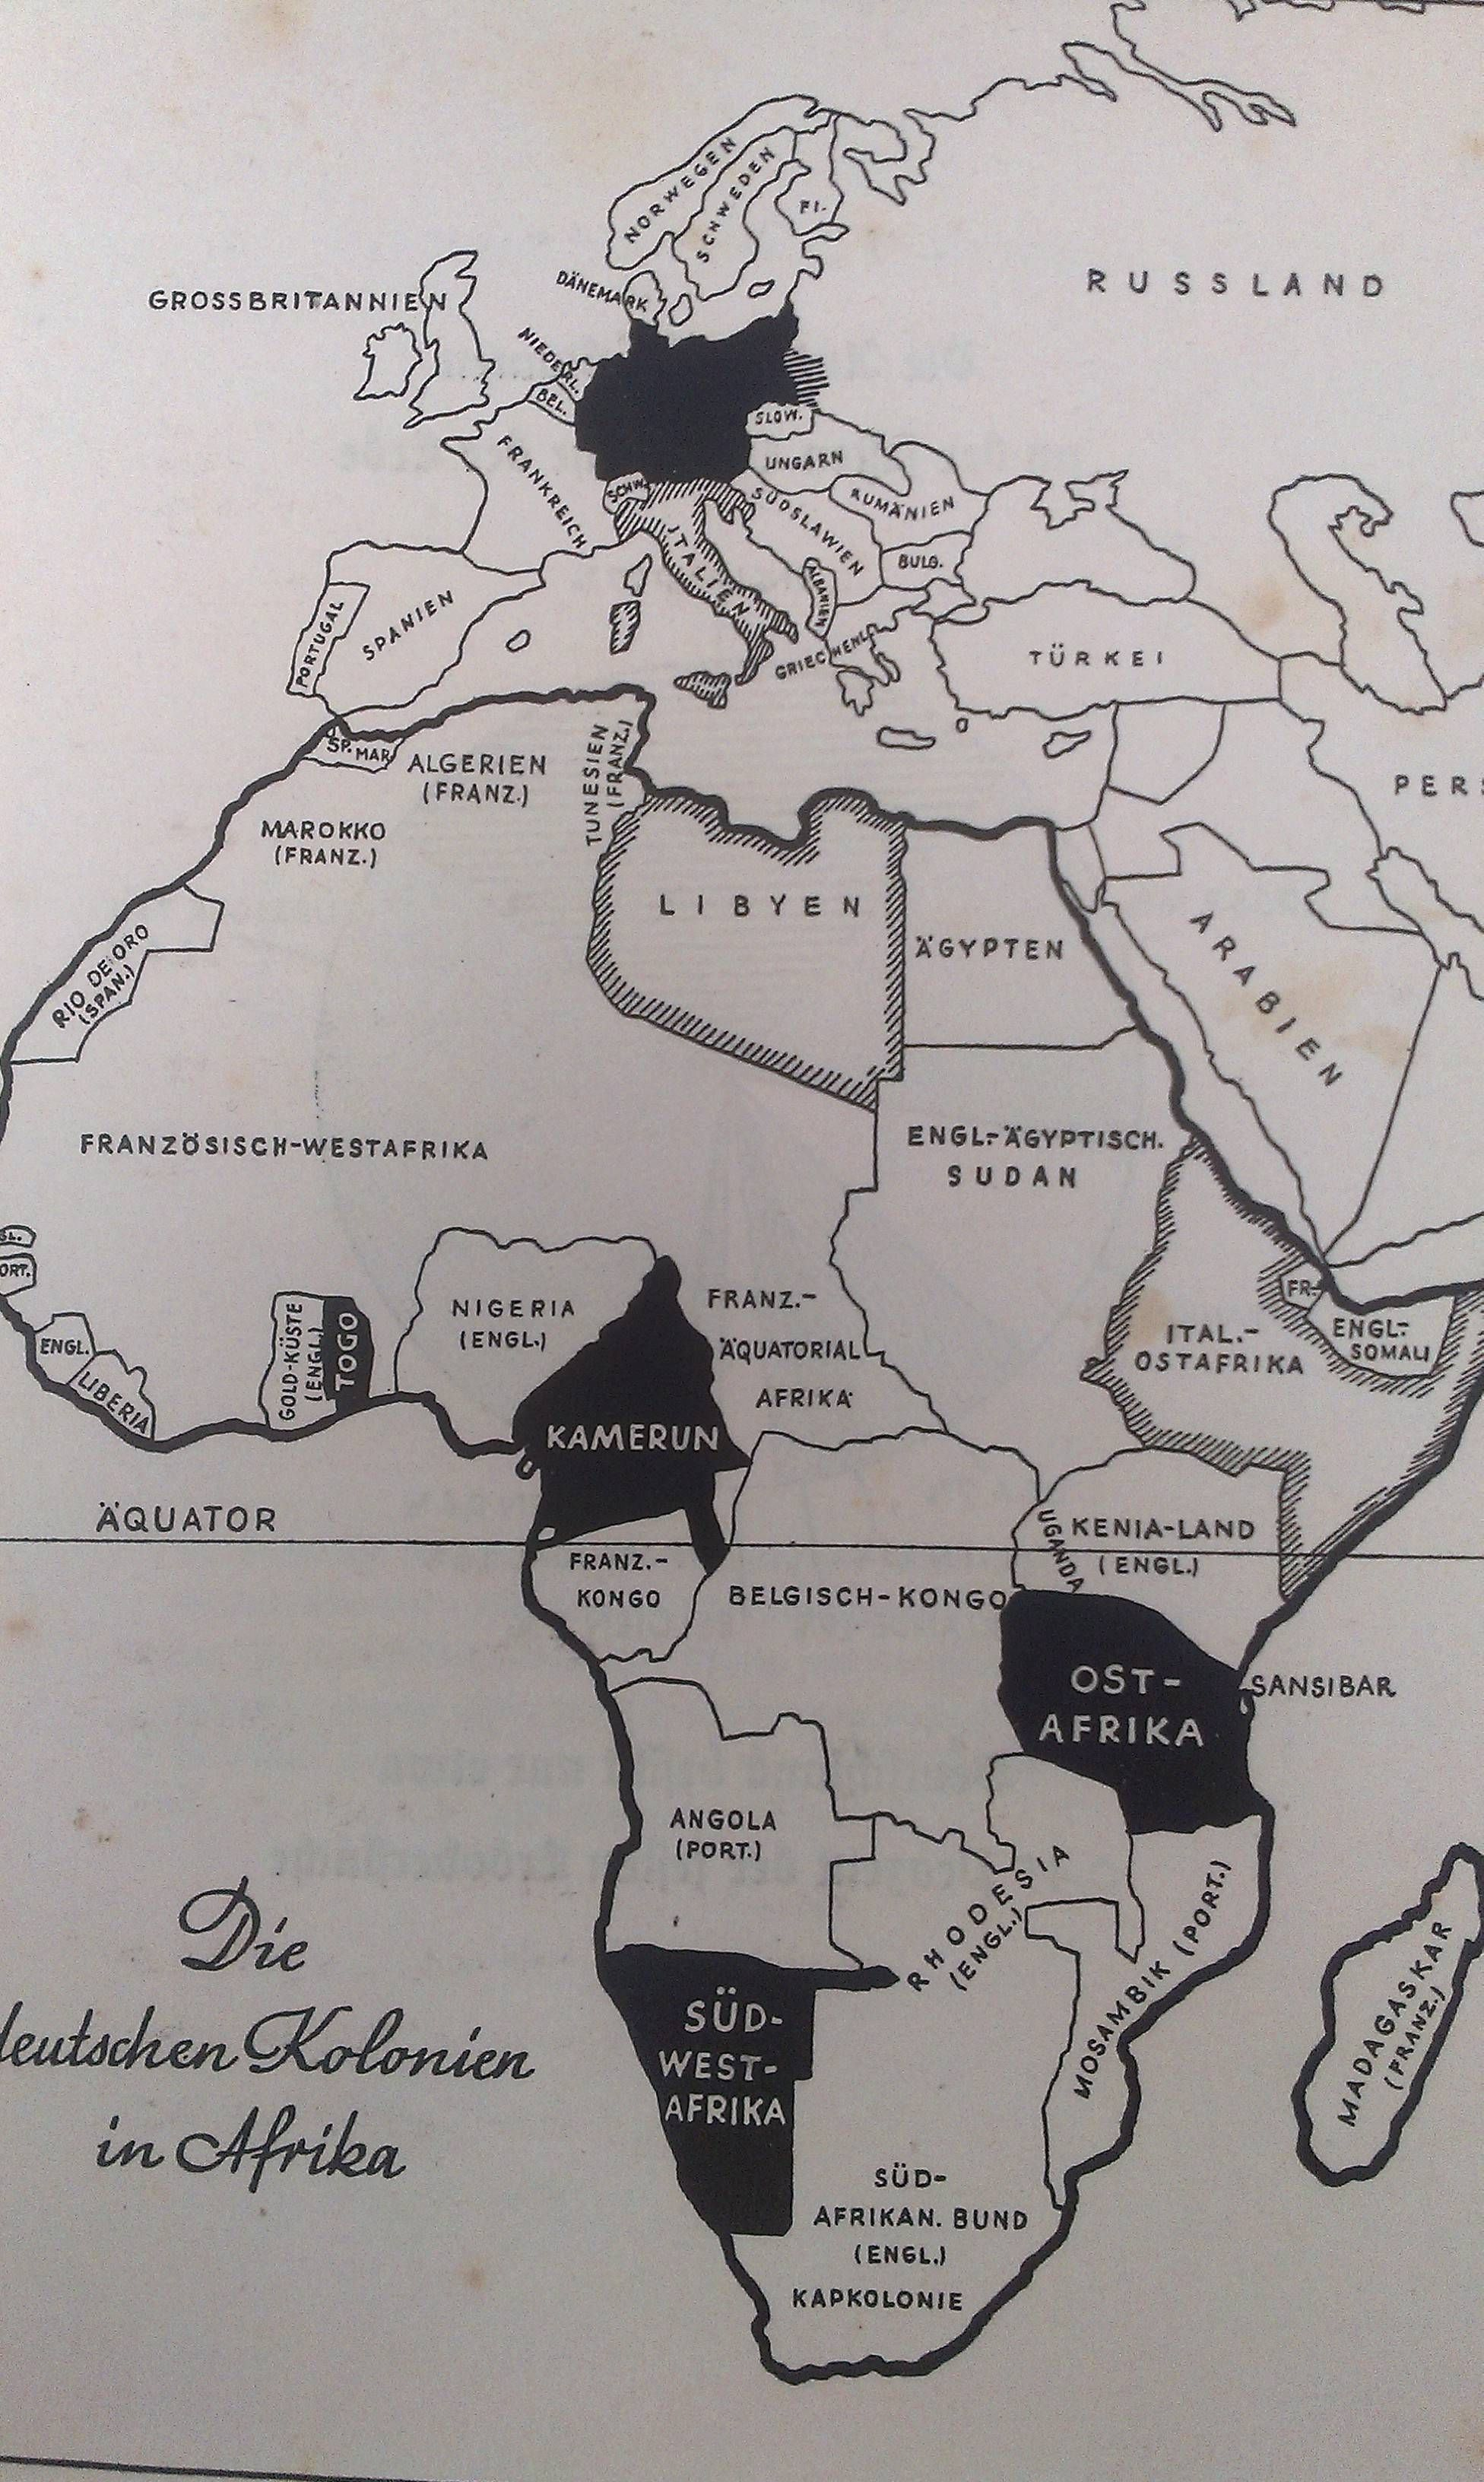 The German colonies in Africa Map from